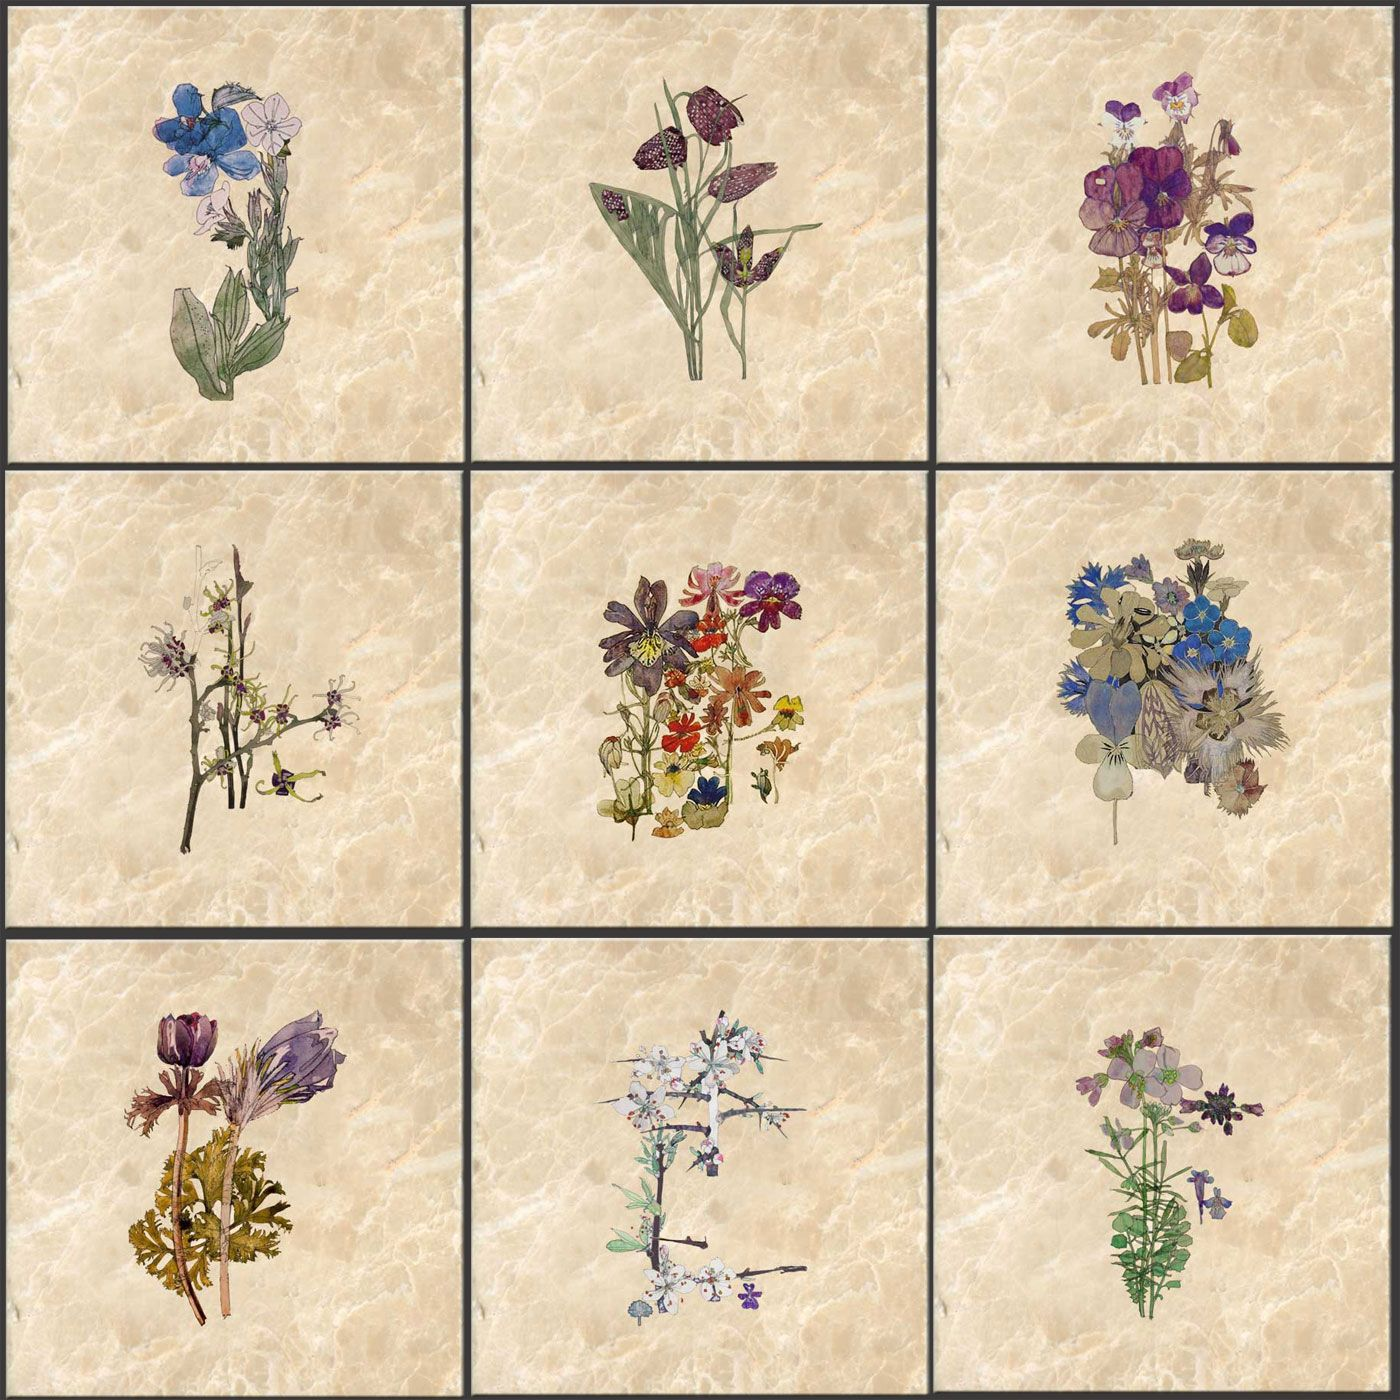 Pinned for later from WilliamMorrisTile.com Charles Rennie Mackintosh Flowers, Arts and Crafts , Glasgow Arts and Crafts